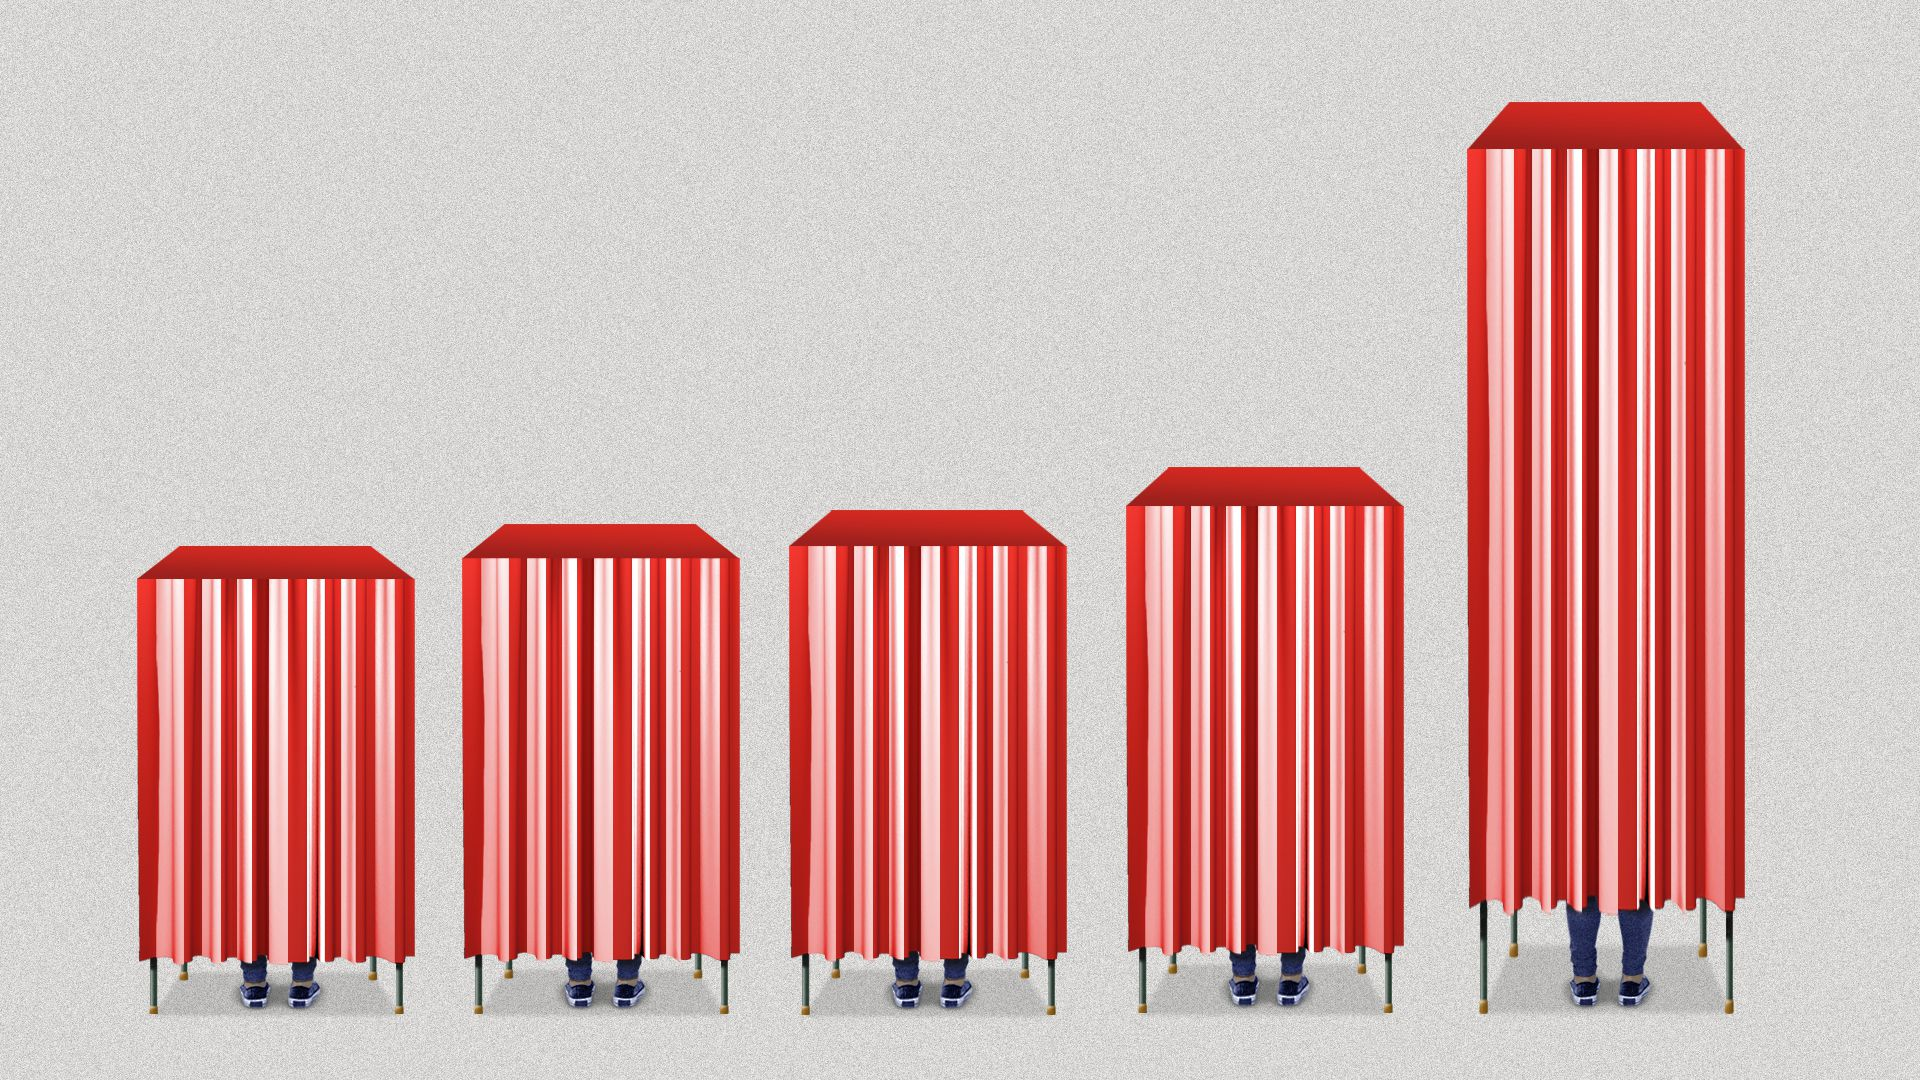 In this illustration, a series of voting booths get longer over time, like a bar chart.